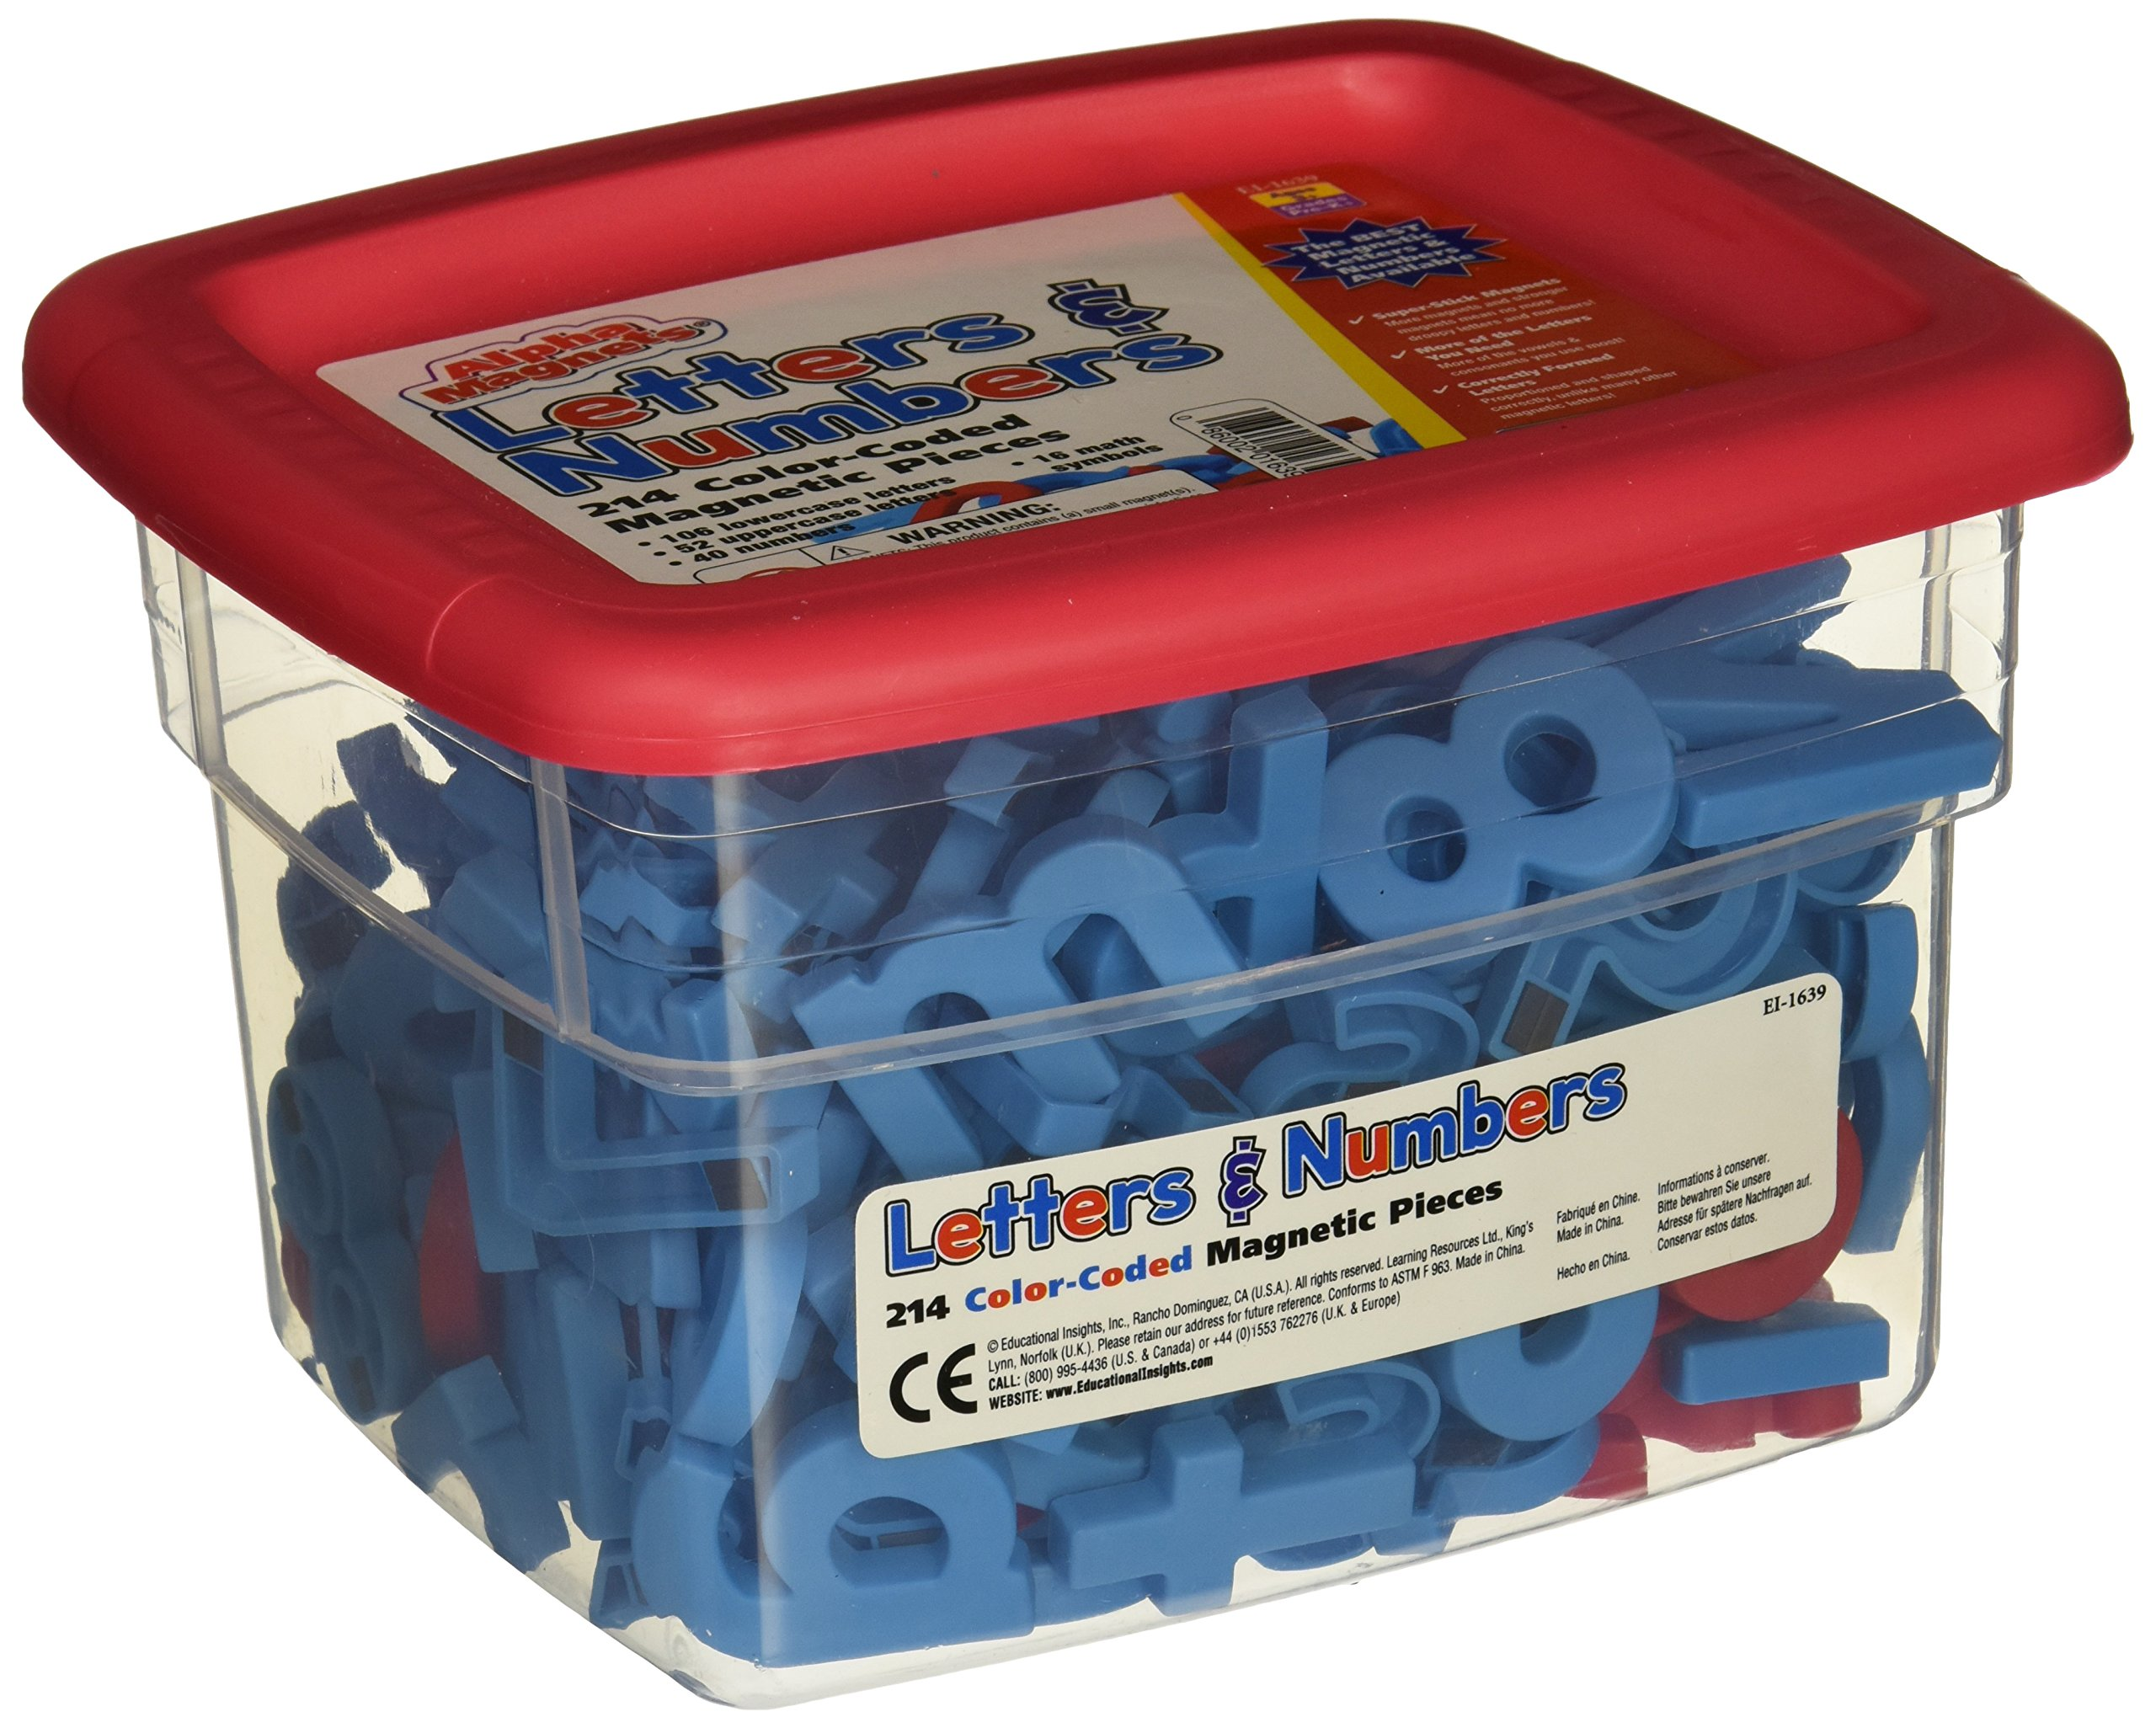 School Smart Educational Insights Alphamagnets & Mathmagnets, Red and Blue, 214 Pieces - 070621